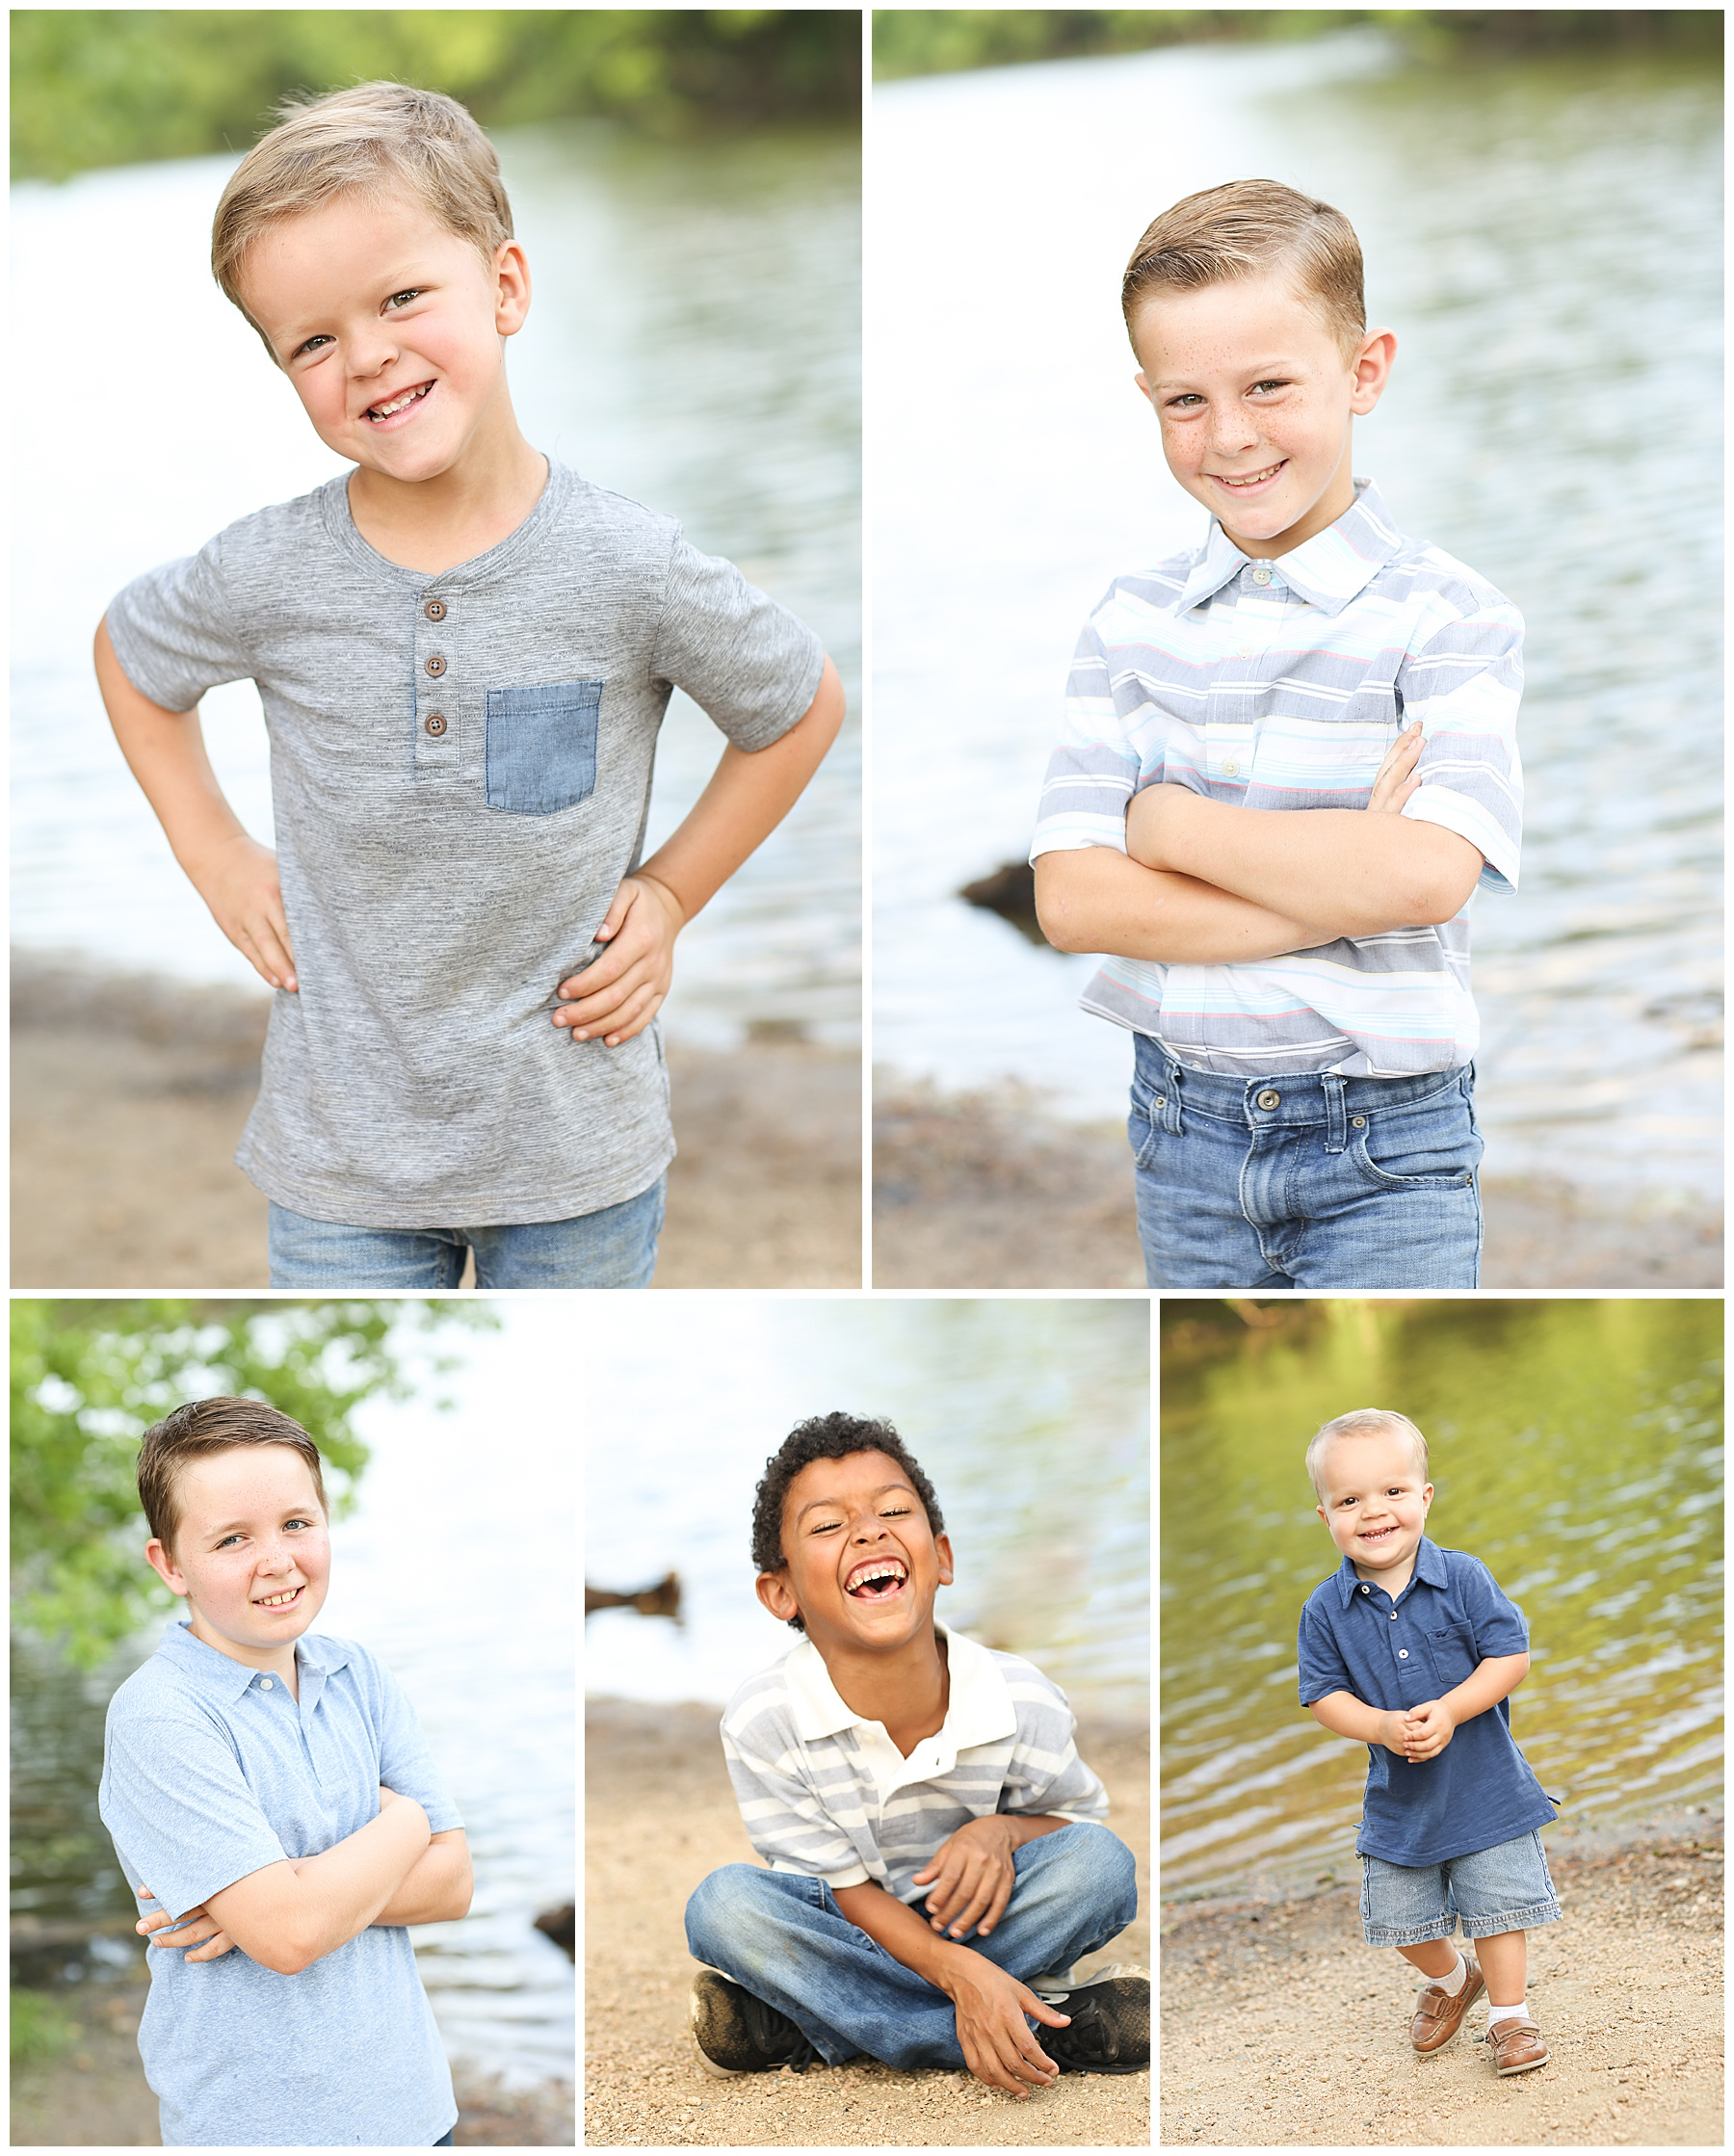 Spring Texas Family Photography, Houston Family Photography, The Woodlands Family Photography